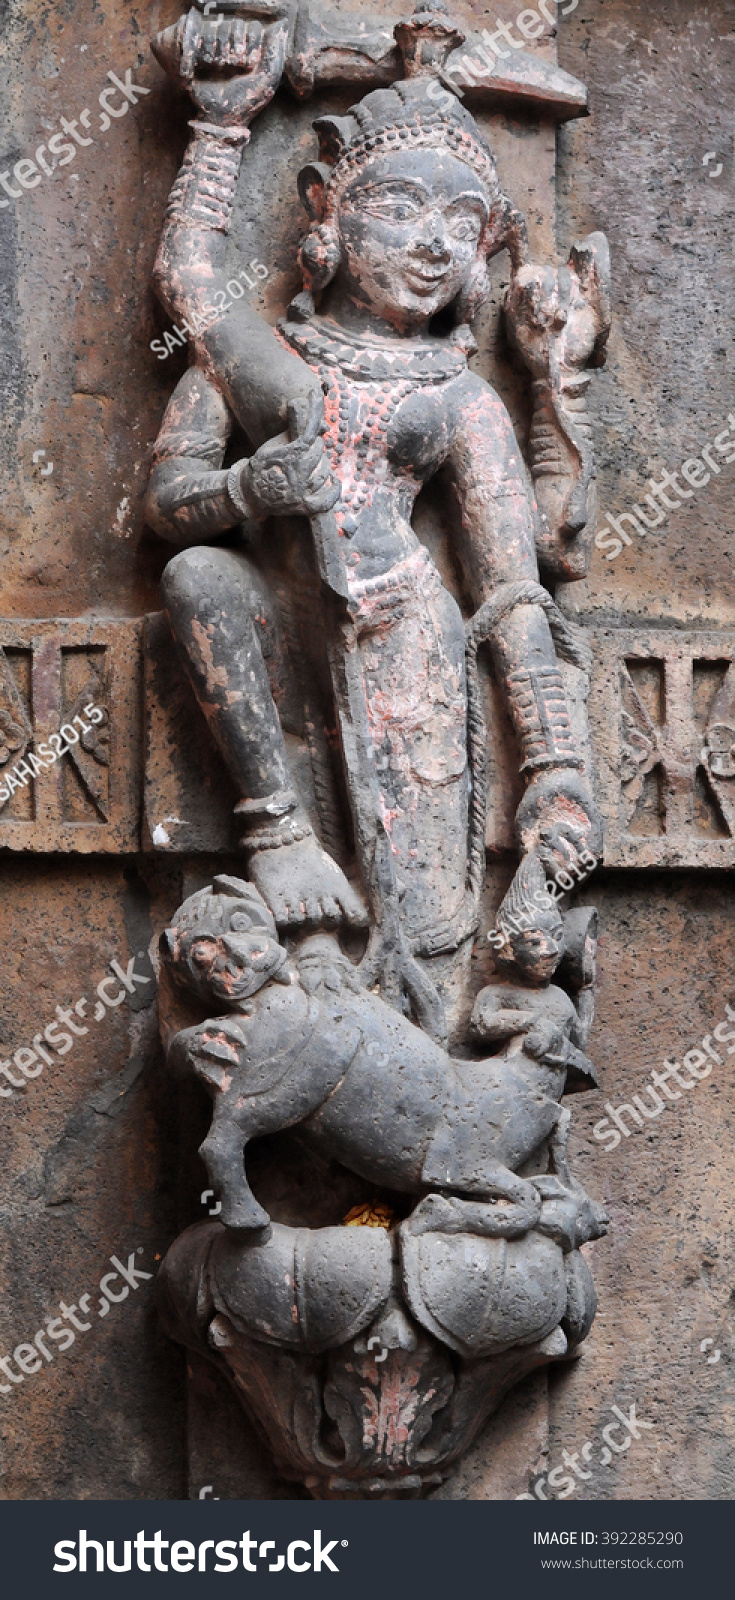 Hindu gods on carved stone wall stock photo